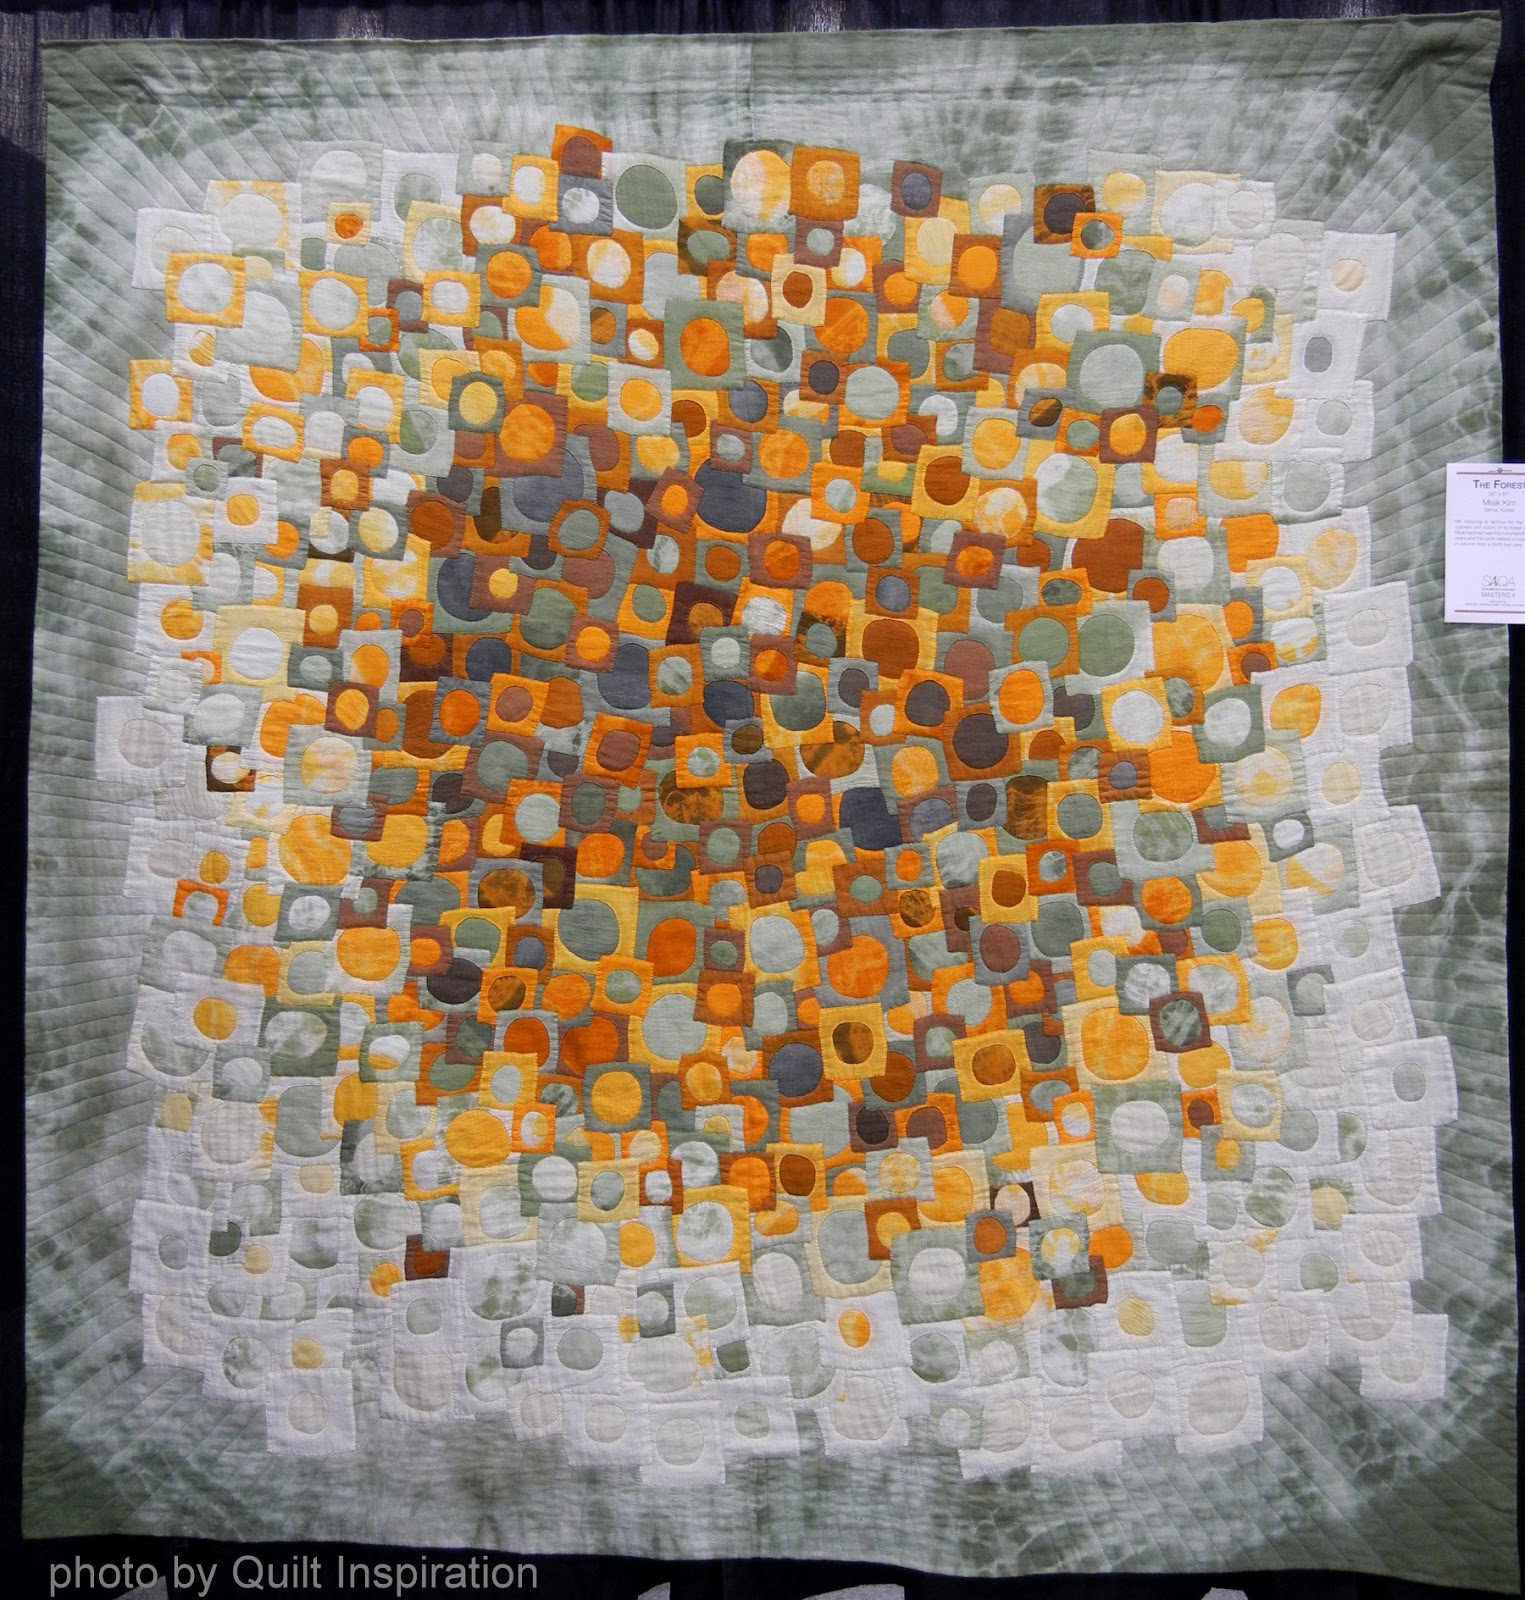 Modern Quilt Month: Contemporary Art Quilts | Quilt Inspiration ... : artistic quilts - Adamdwight.com